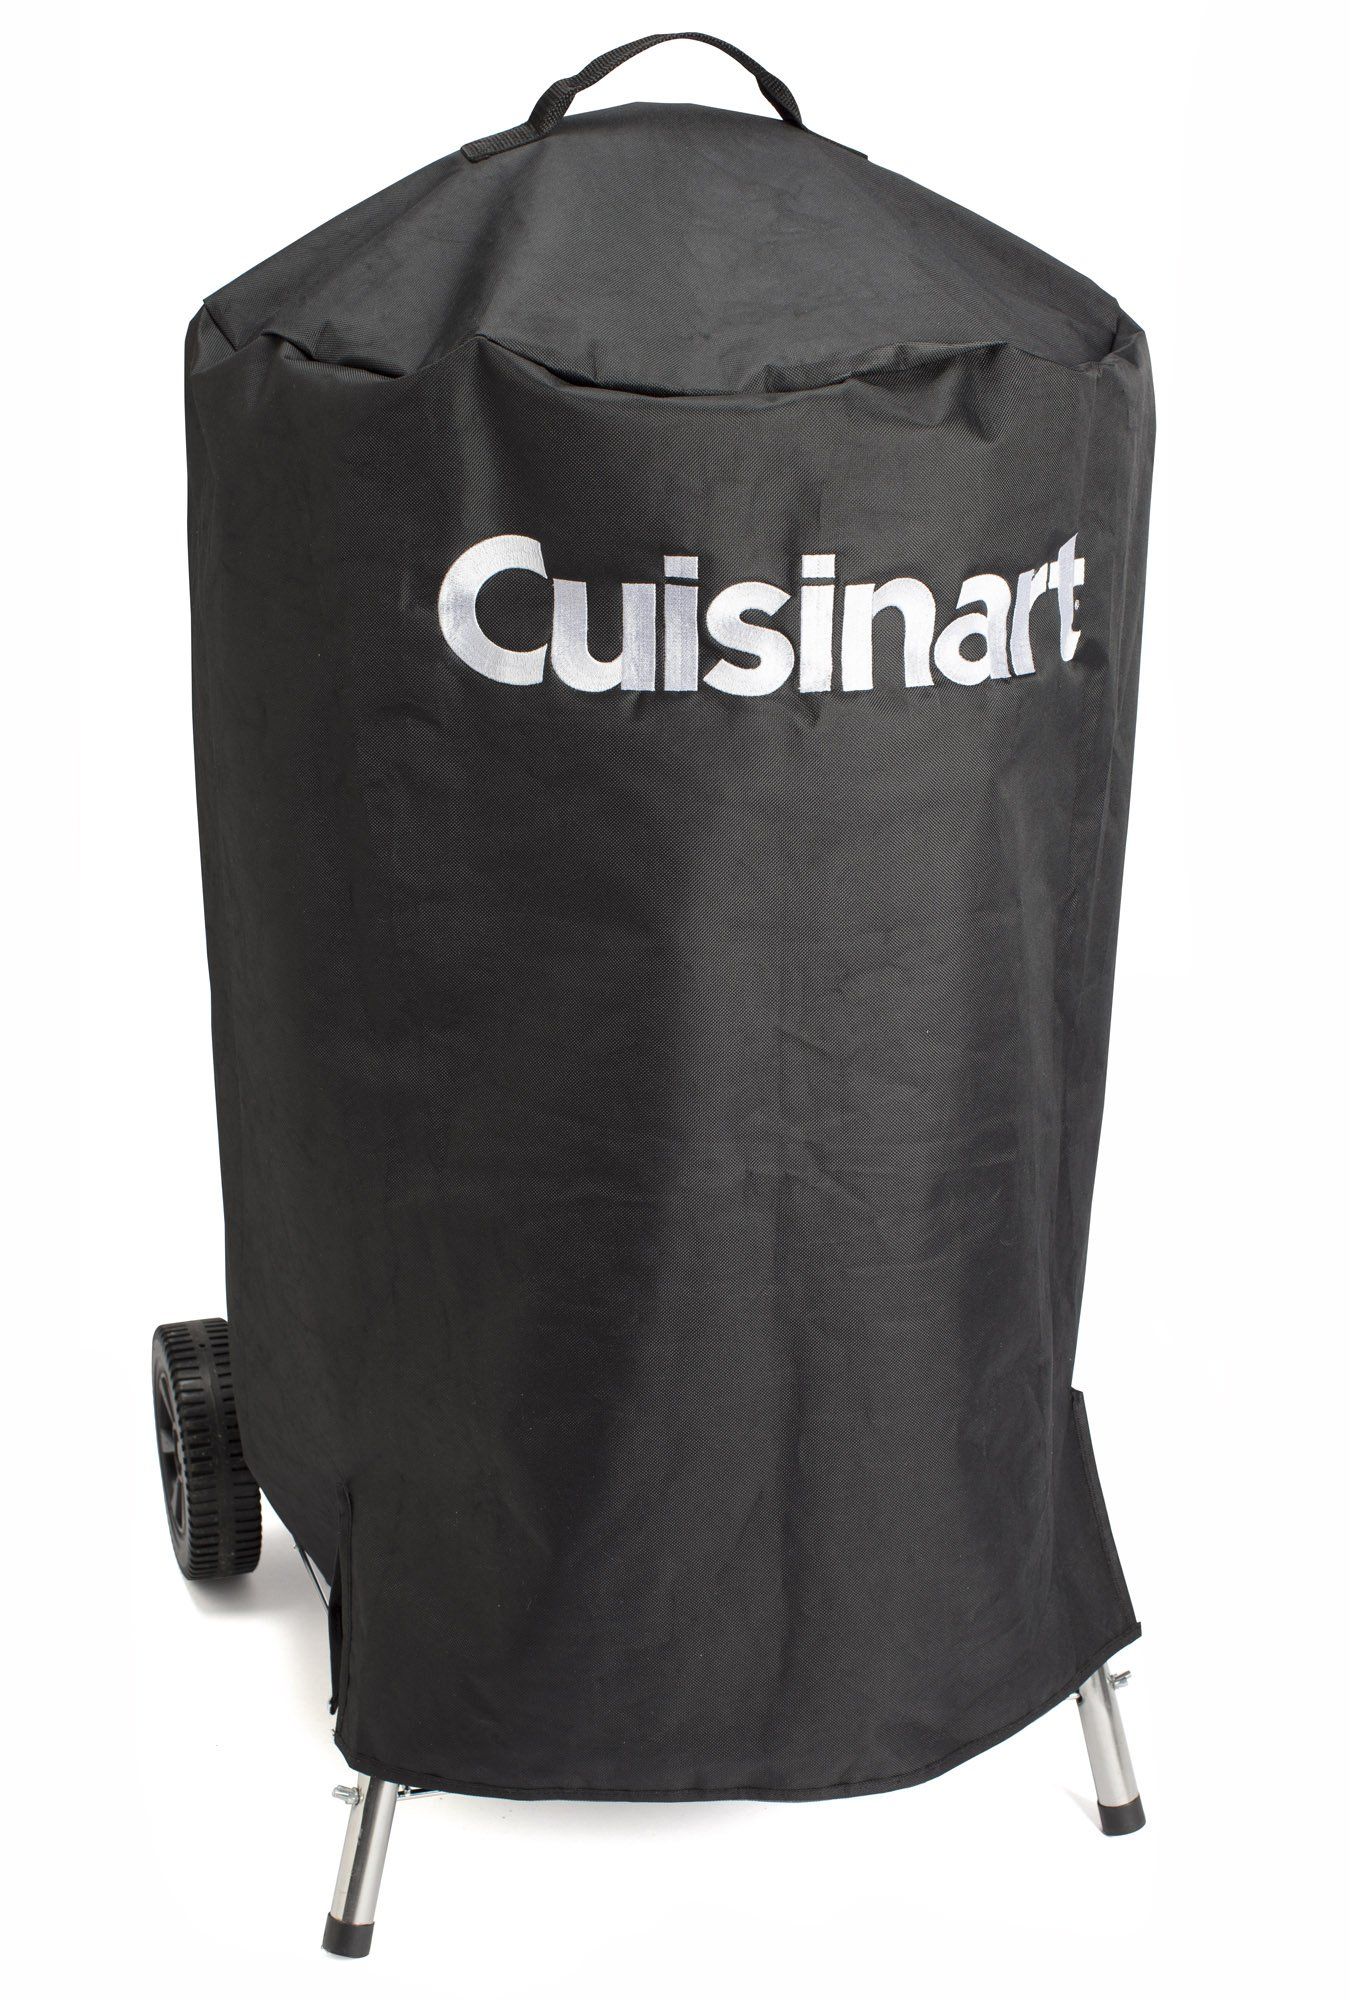 Cuisinart CGC-10118 18'' Universal Kettle Cover by Cuisinart